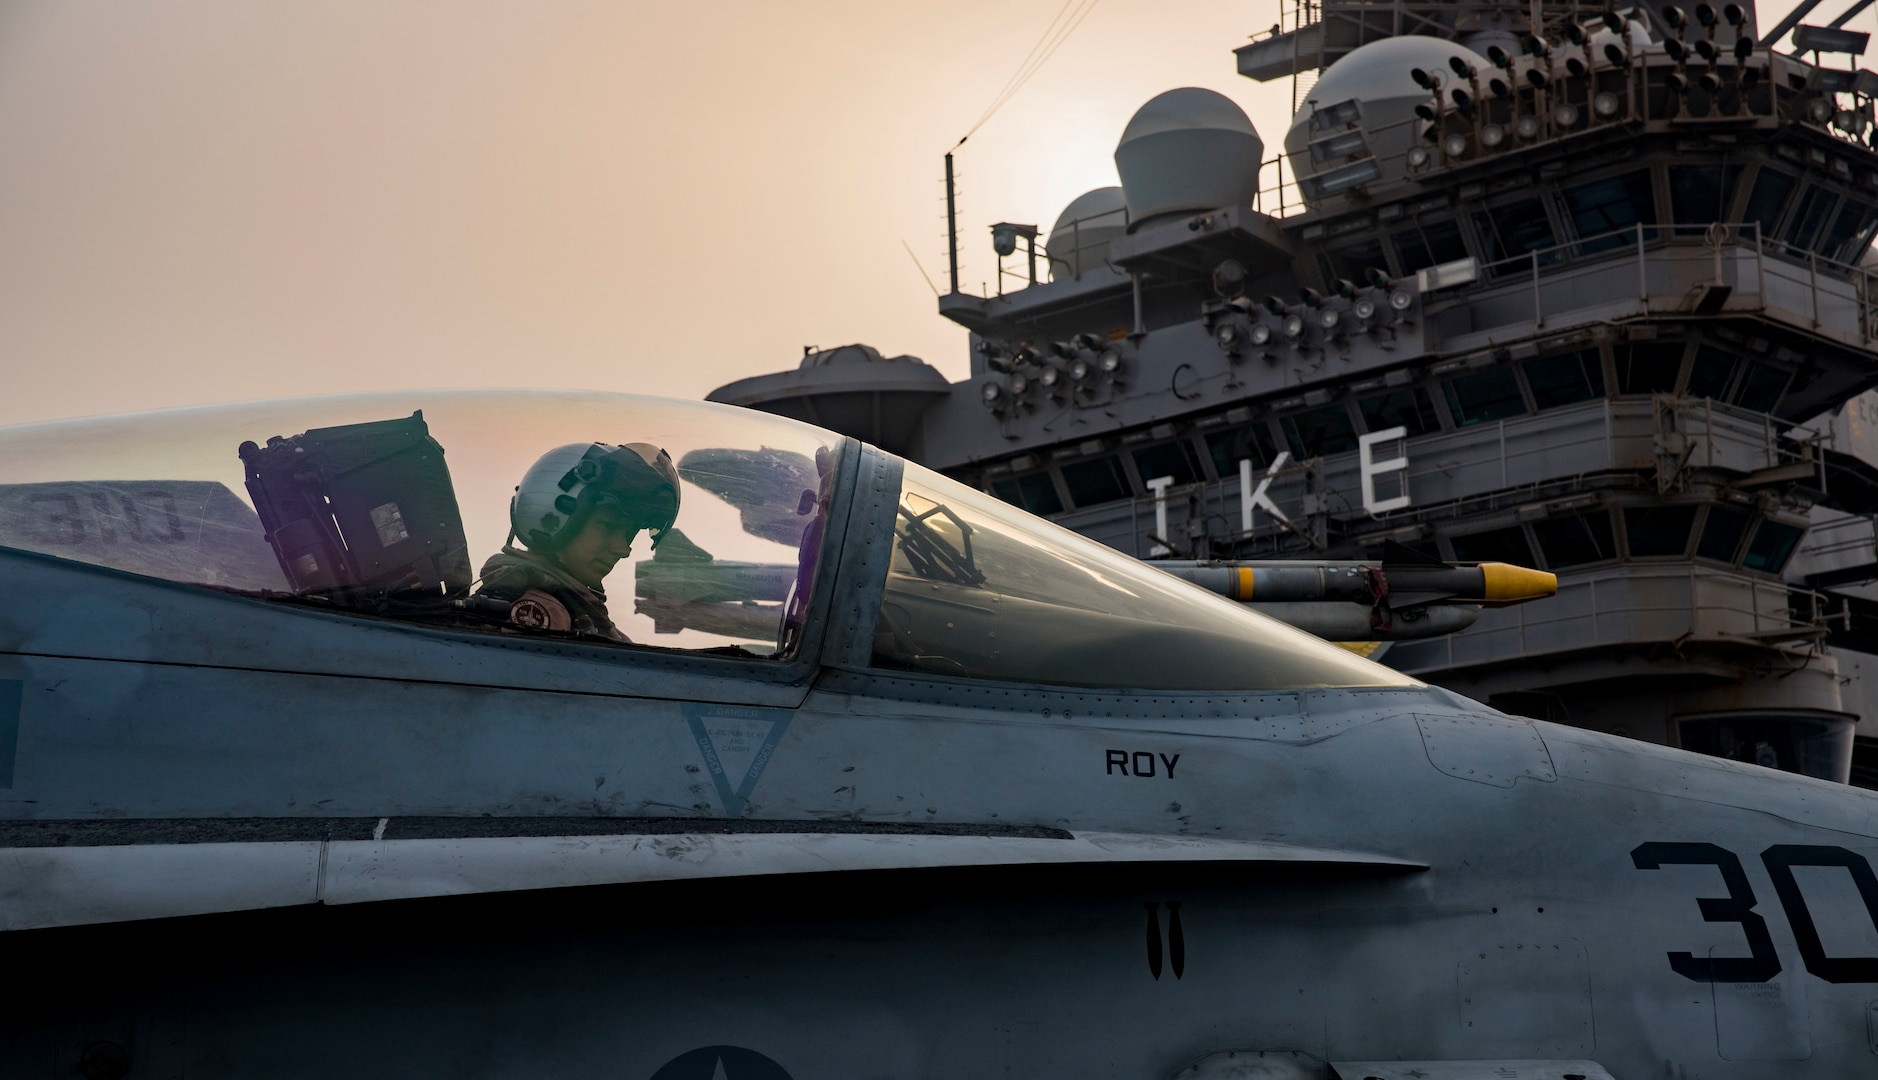 A Navy pilot assigned to Strike Fighter Squadron 131 taxies an F/A-18C Hornet on the flight deck of the aircraft carrier USS Dwight D. Eisenhower at sea in the Persian Gulf, Sept. 9, 2016. The Eisenhower and its carrier strike group are deployed in support of Operation Inherent Resolve, maritime security operations and theater security cooperation efforts in the U.S. 5th Fleet area of operations. Navy photo by Petty Officer 3rd Class Nathan T. Beard